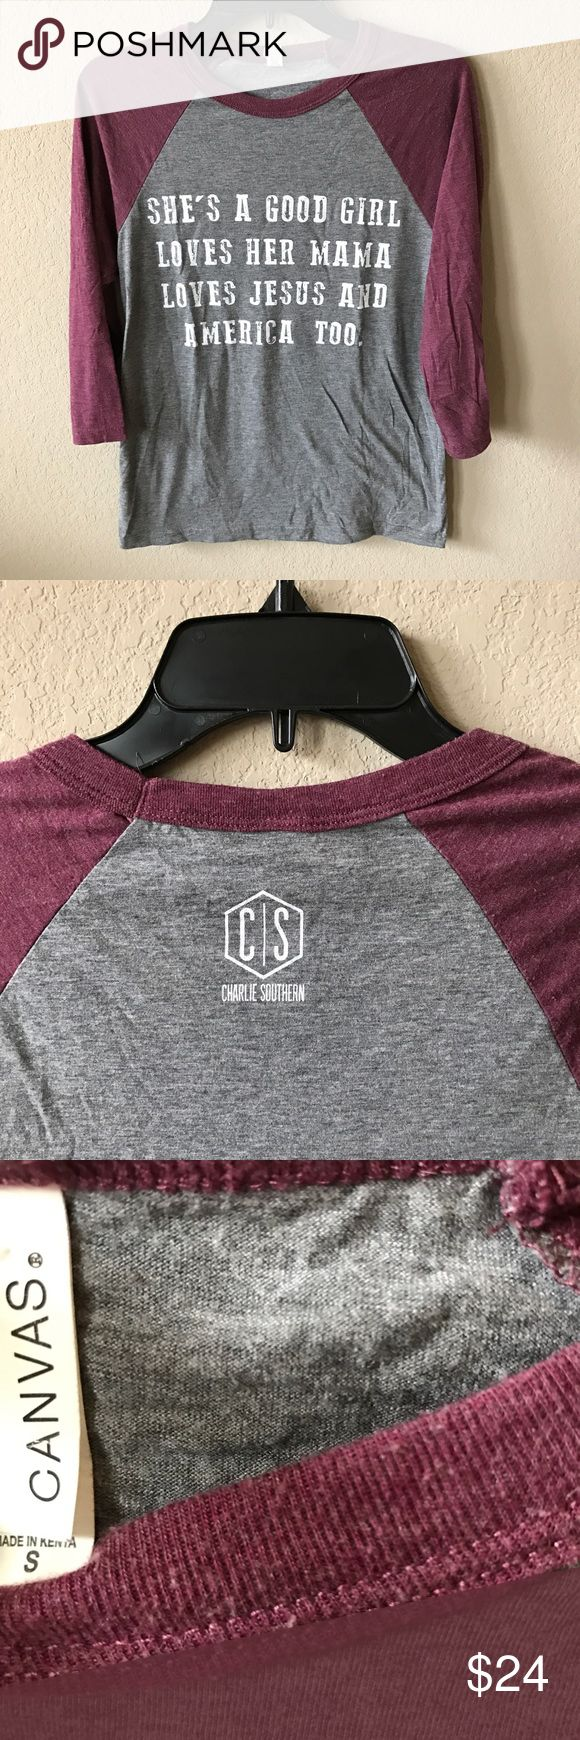 "Charlie Southern Good Girl Raglan - Tom Petty Like-new (worn once) soft canvas t-shirt with 3/4 length sleeves. Tom Petty (John Mayer) Free Fallin' lyrics reading: ""She's a good girl loves her mama loves Jesus and America too."" Tops Tees - Long Sleeve"